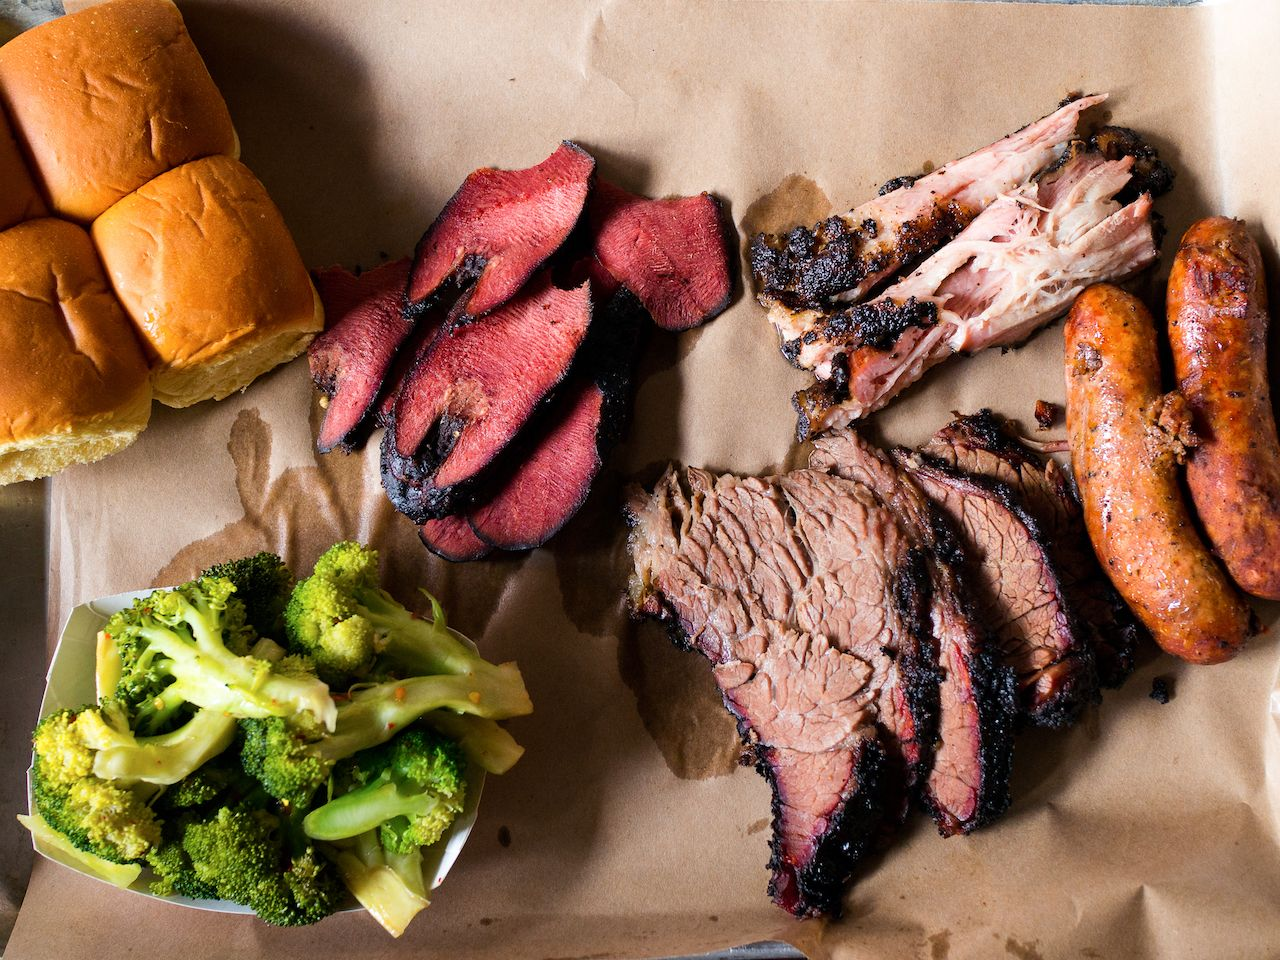 BBQ and smoked meats with broccoli and rolls